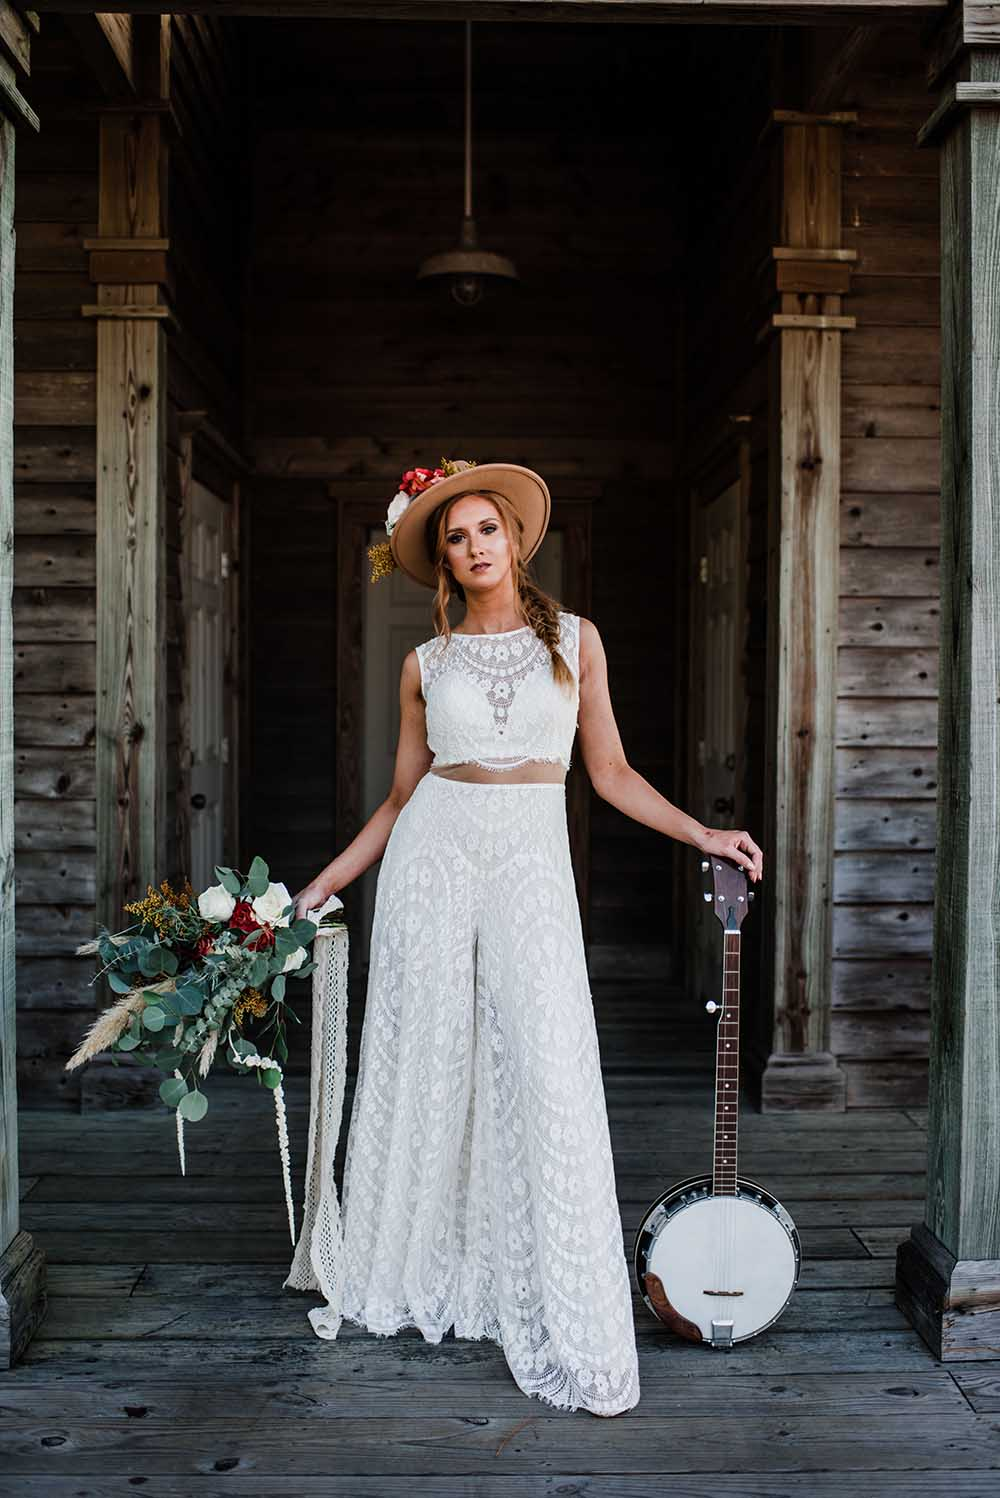 Boho Elopement Microwedding Bridal Jumpsuit | photo by MBM Photography | featured on I Do Y'all